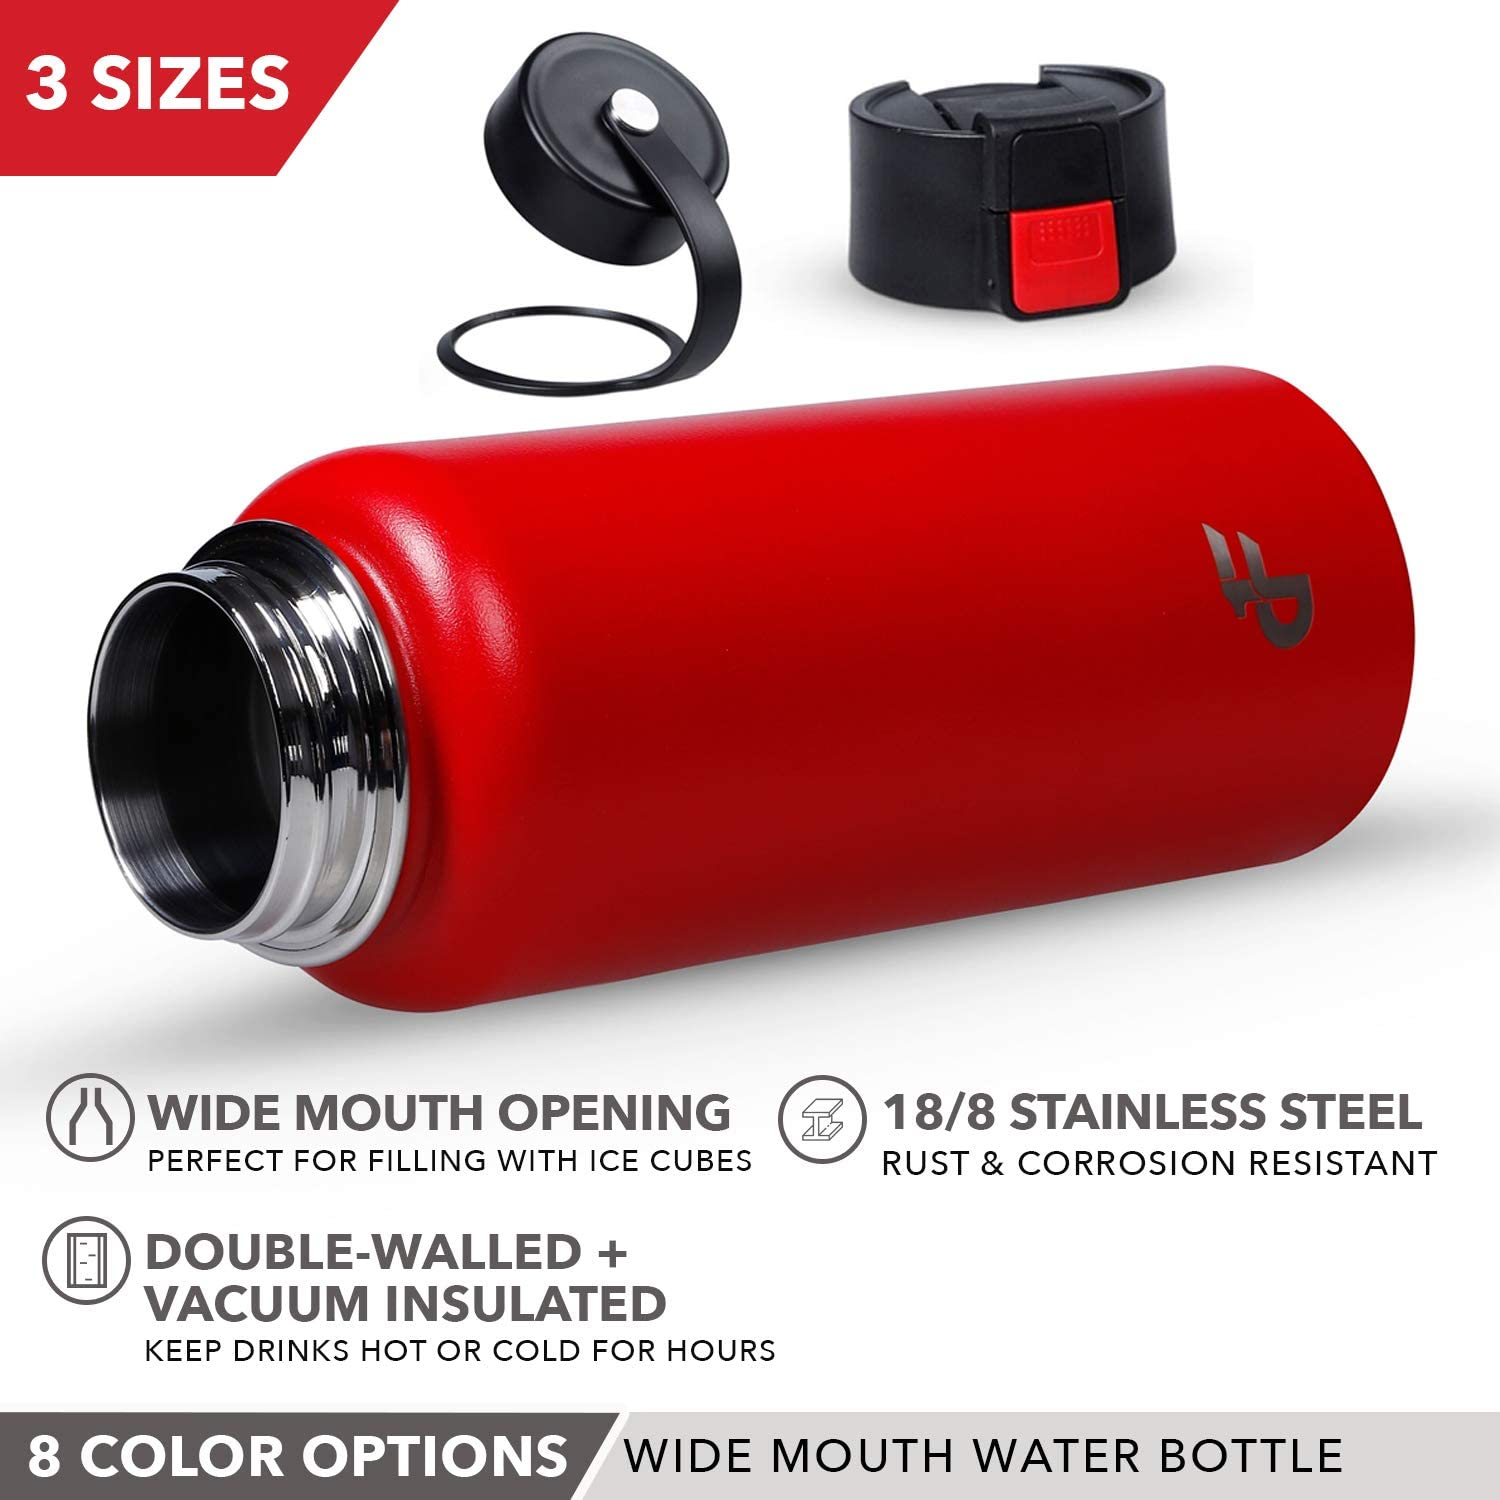 - 3 Size and 8 Color Options Powder-Coated Sweat Proof Thermos 20 oz, 32 oz, or 40 oz Vacuum Insulated Double Walled Day 1 Fitness Stainless Steel Water Bottle Wide Mouth with 2 LIDS